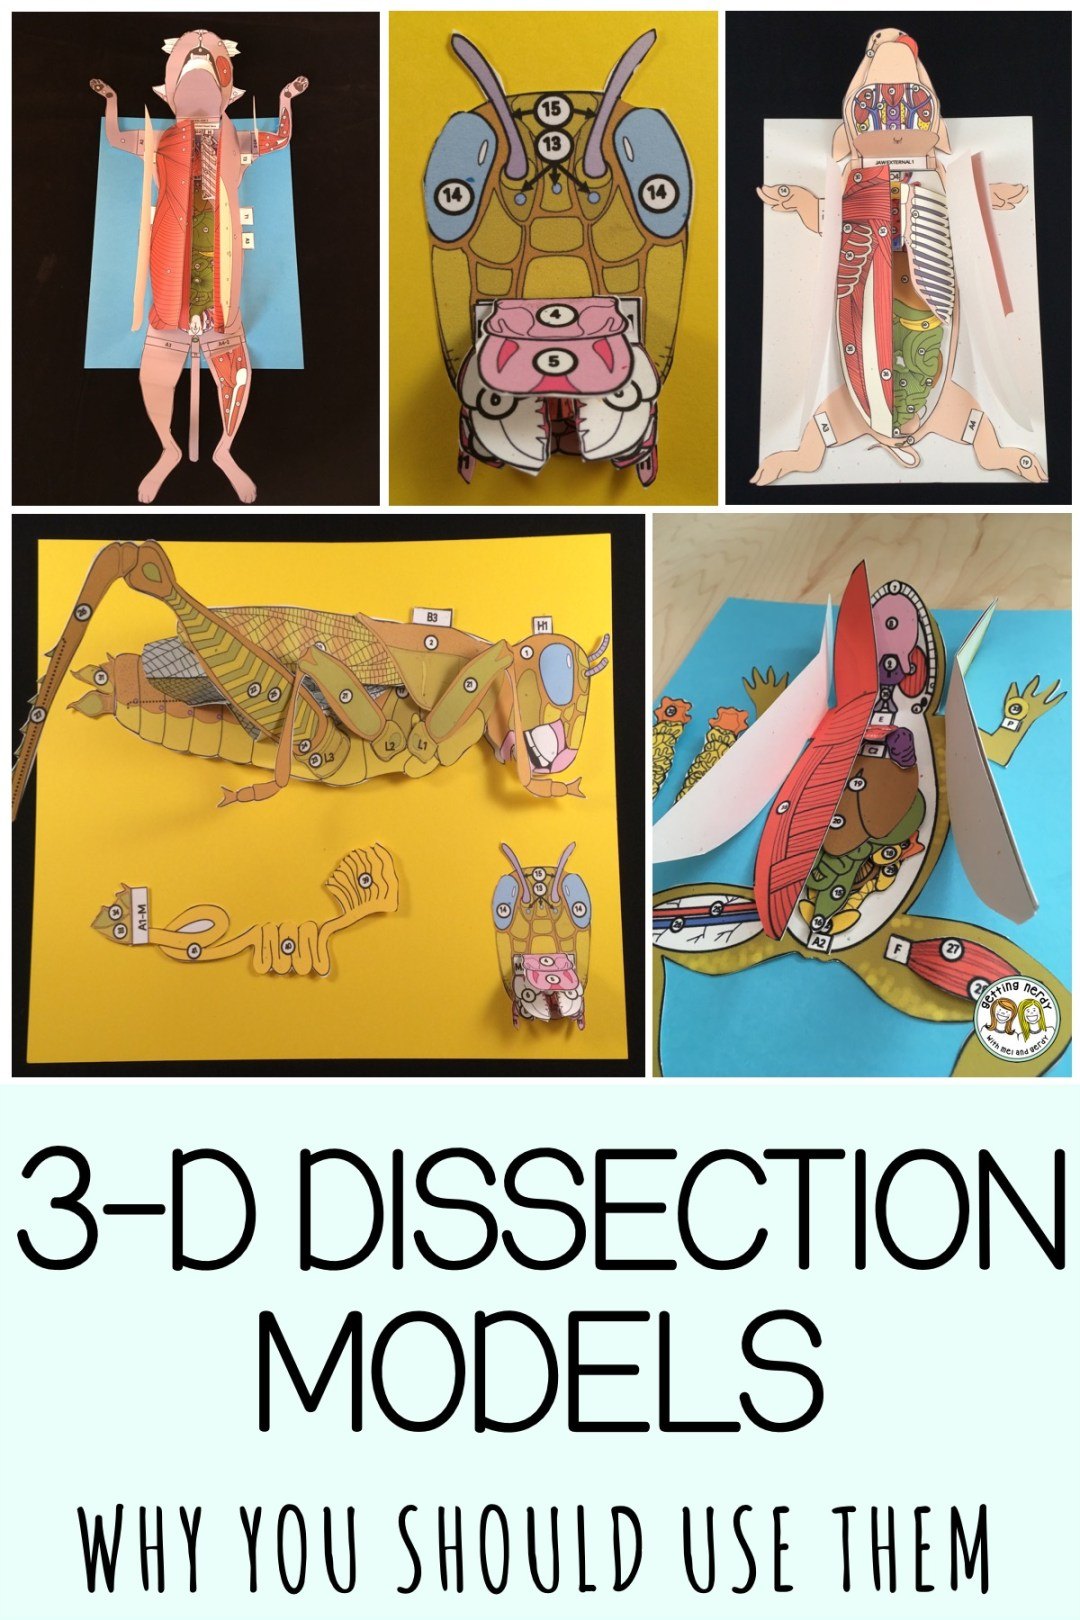 Read why 3-D dissection paper models can provide an authentic alternative and realistic preparation to the real thing. #gettingnerdyscience #papermodels #dissection #dissectionmodels